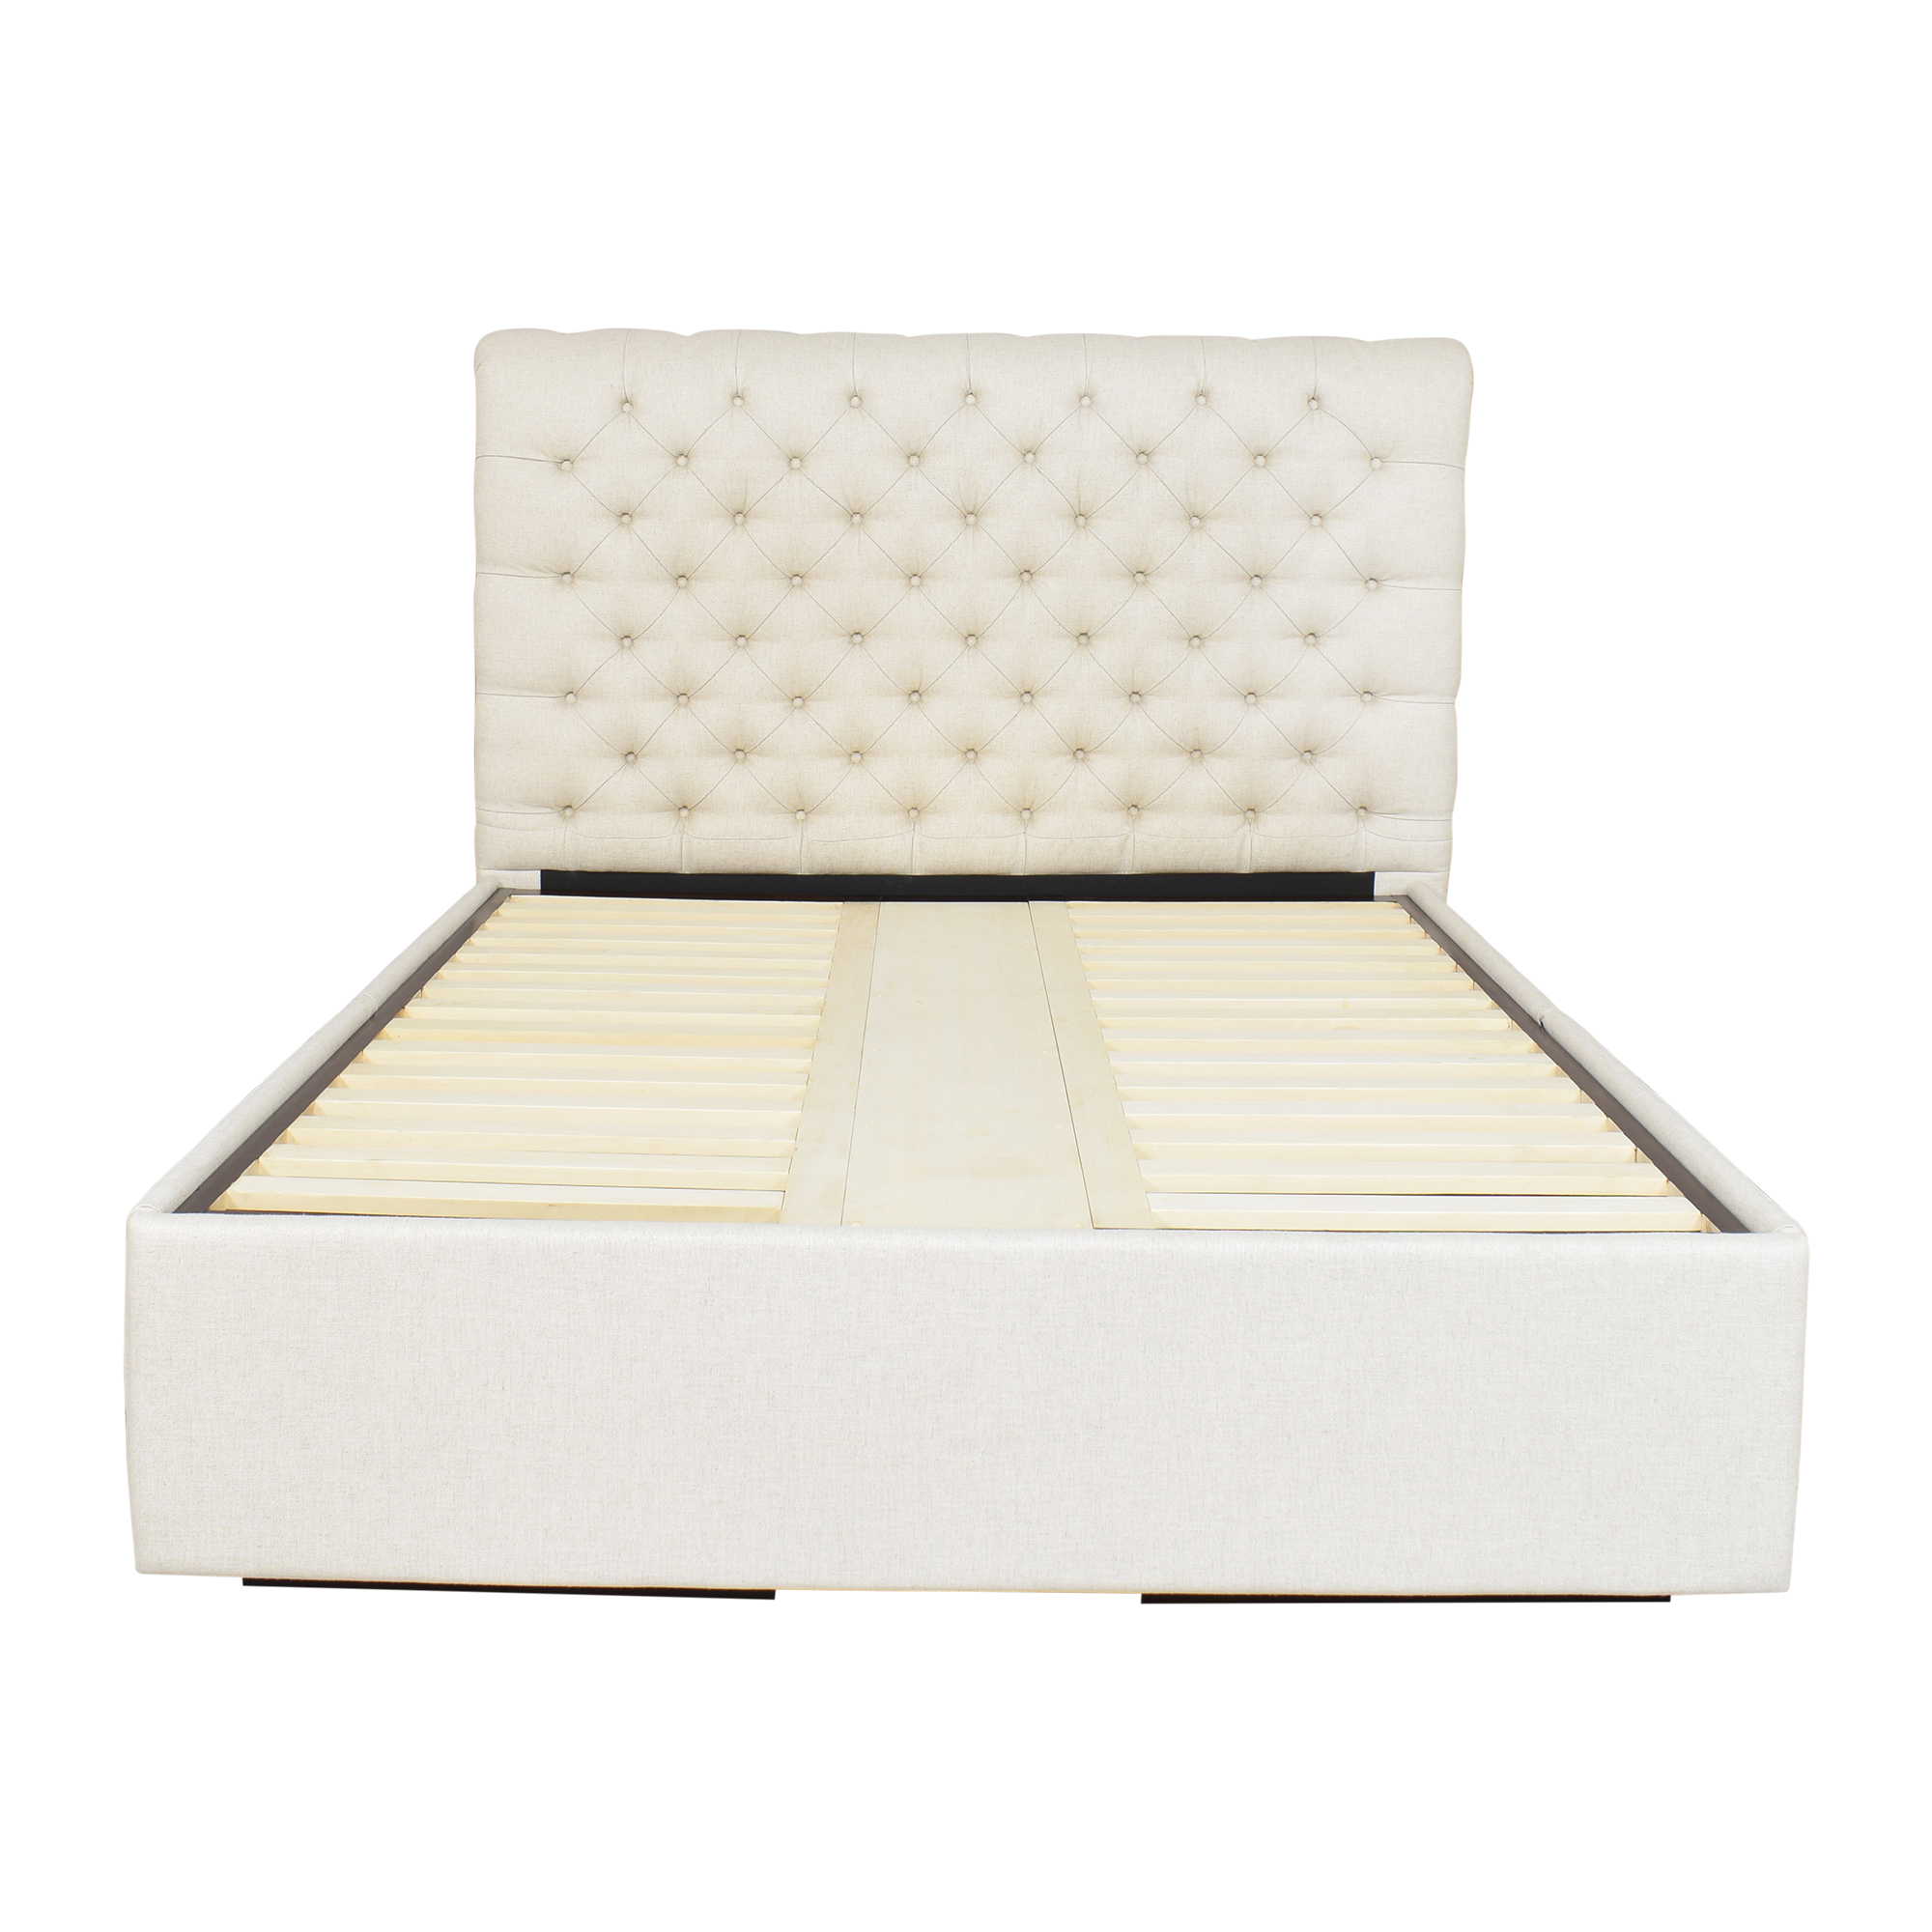 Pottery Barn Chesterfield Upholstered Queen Storage Bed / Beds